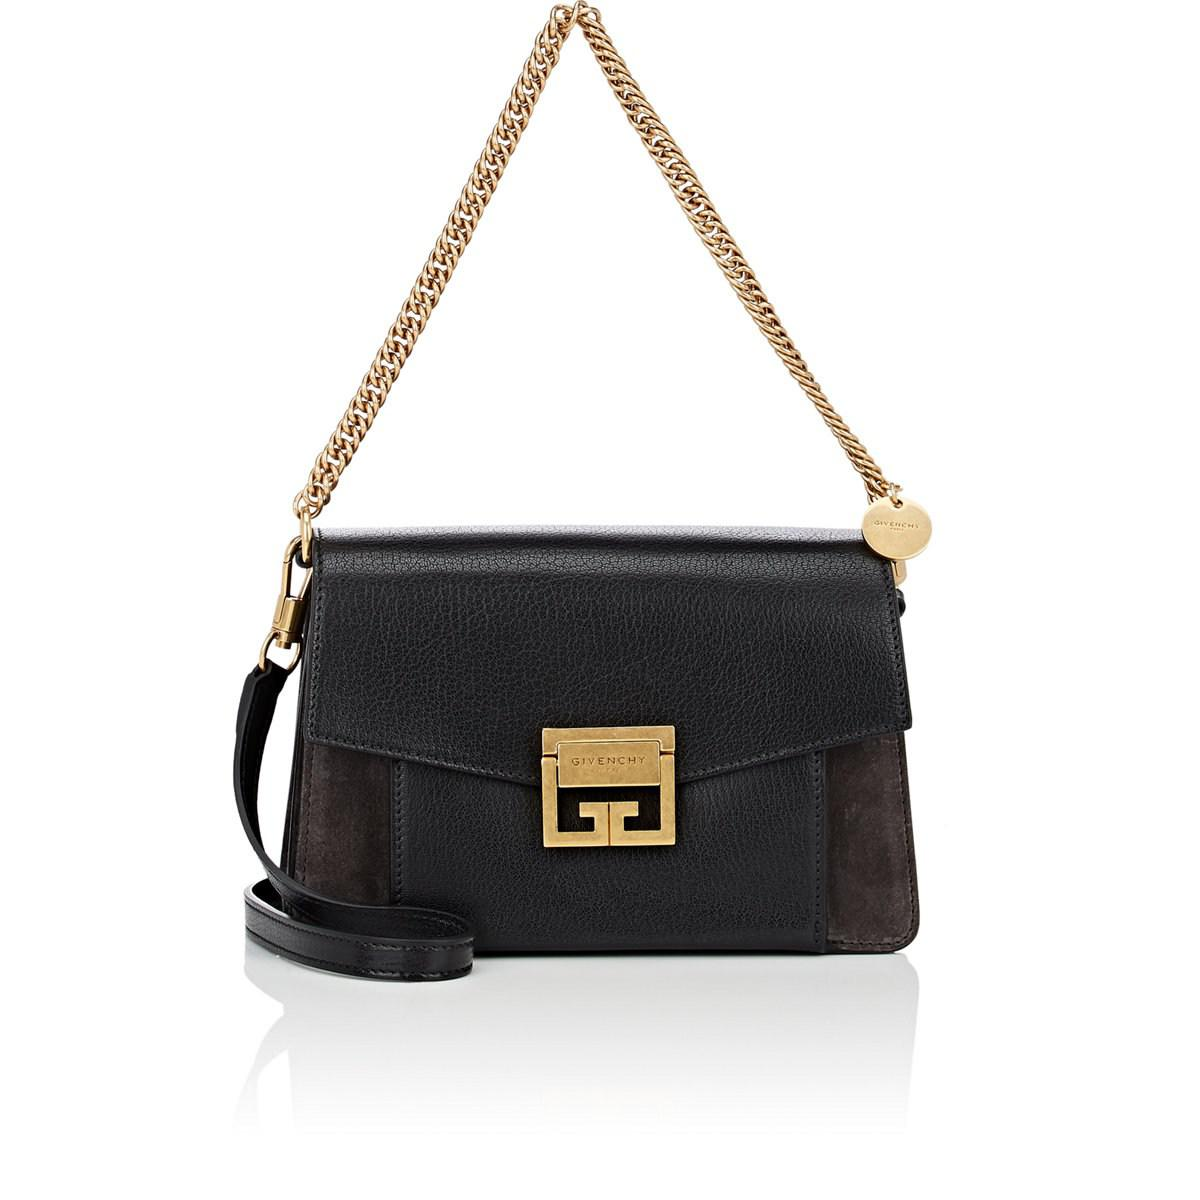 a1d11bb56897c Givenchy - Black Gv3 Small Leather   Suede Shoulder Bag - Lyst. View  fullscreen